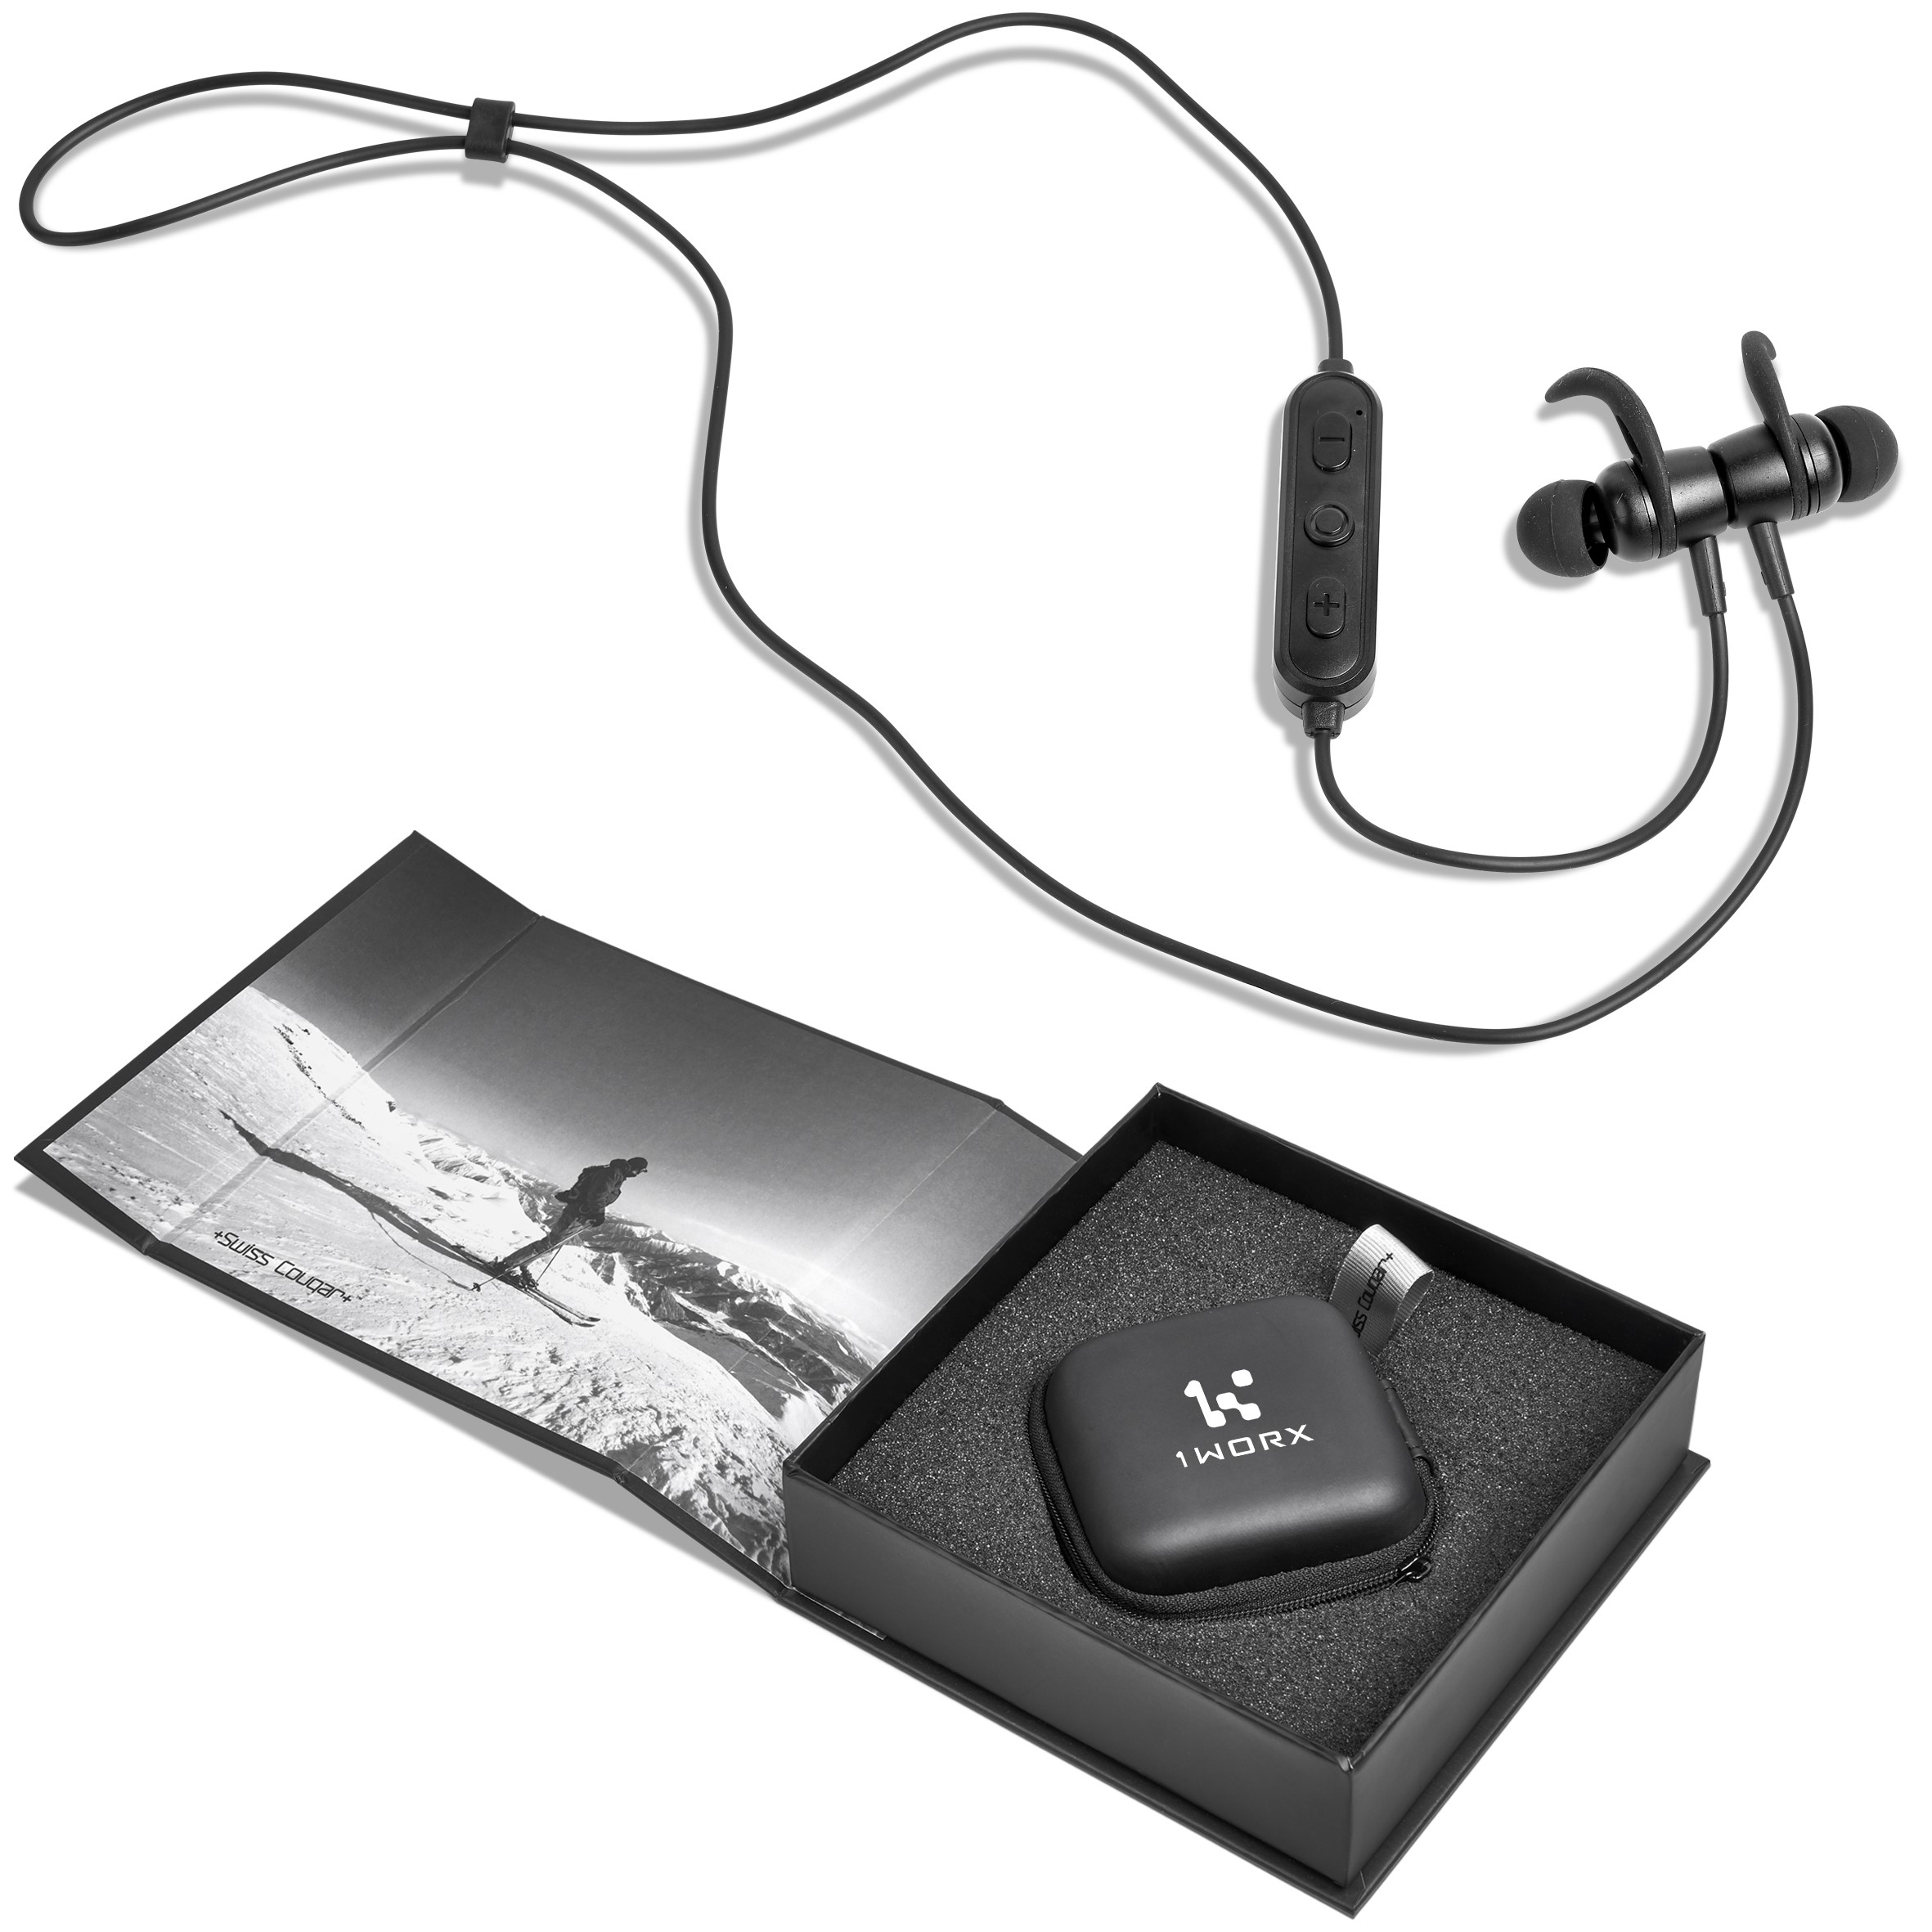 Swiss Cougar San Diego Bluetooth Sports Earbuds